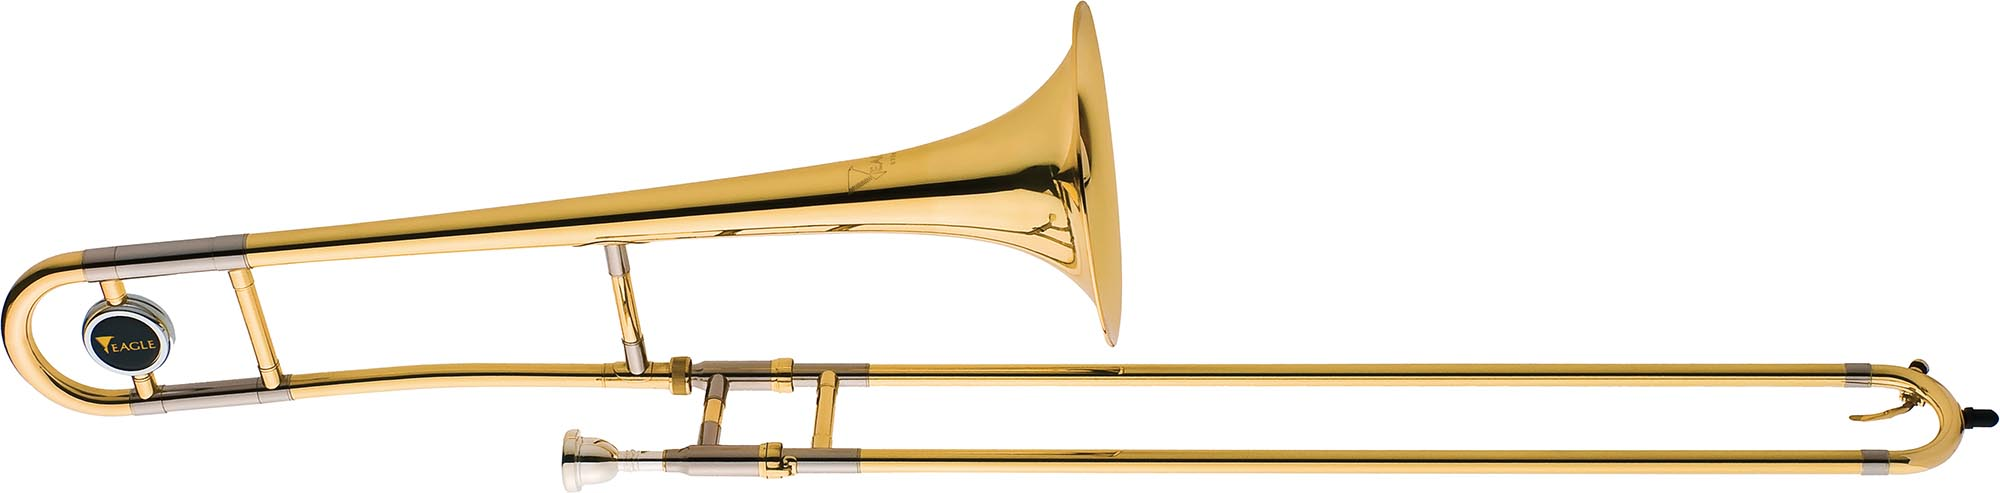 tv600 trombone de vara eagle tv600 laqueado